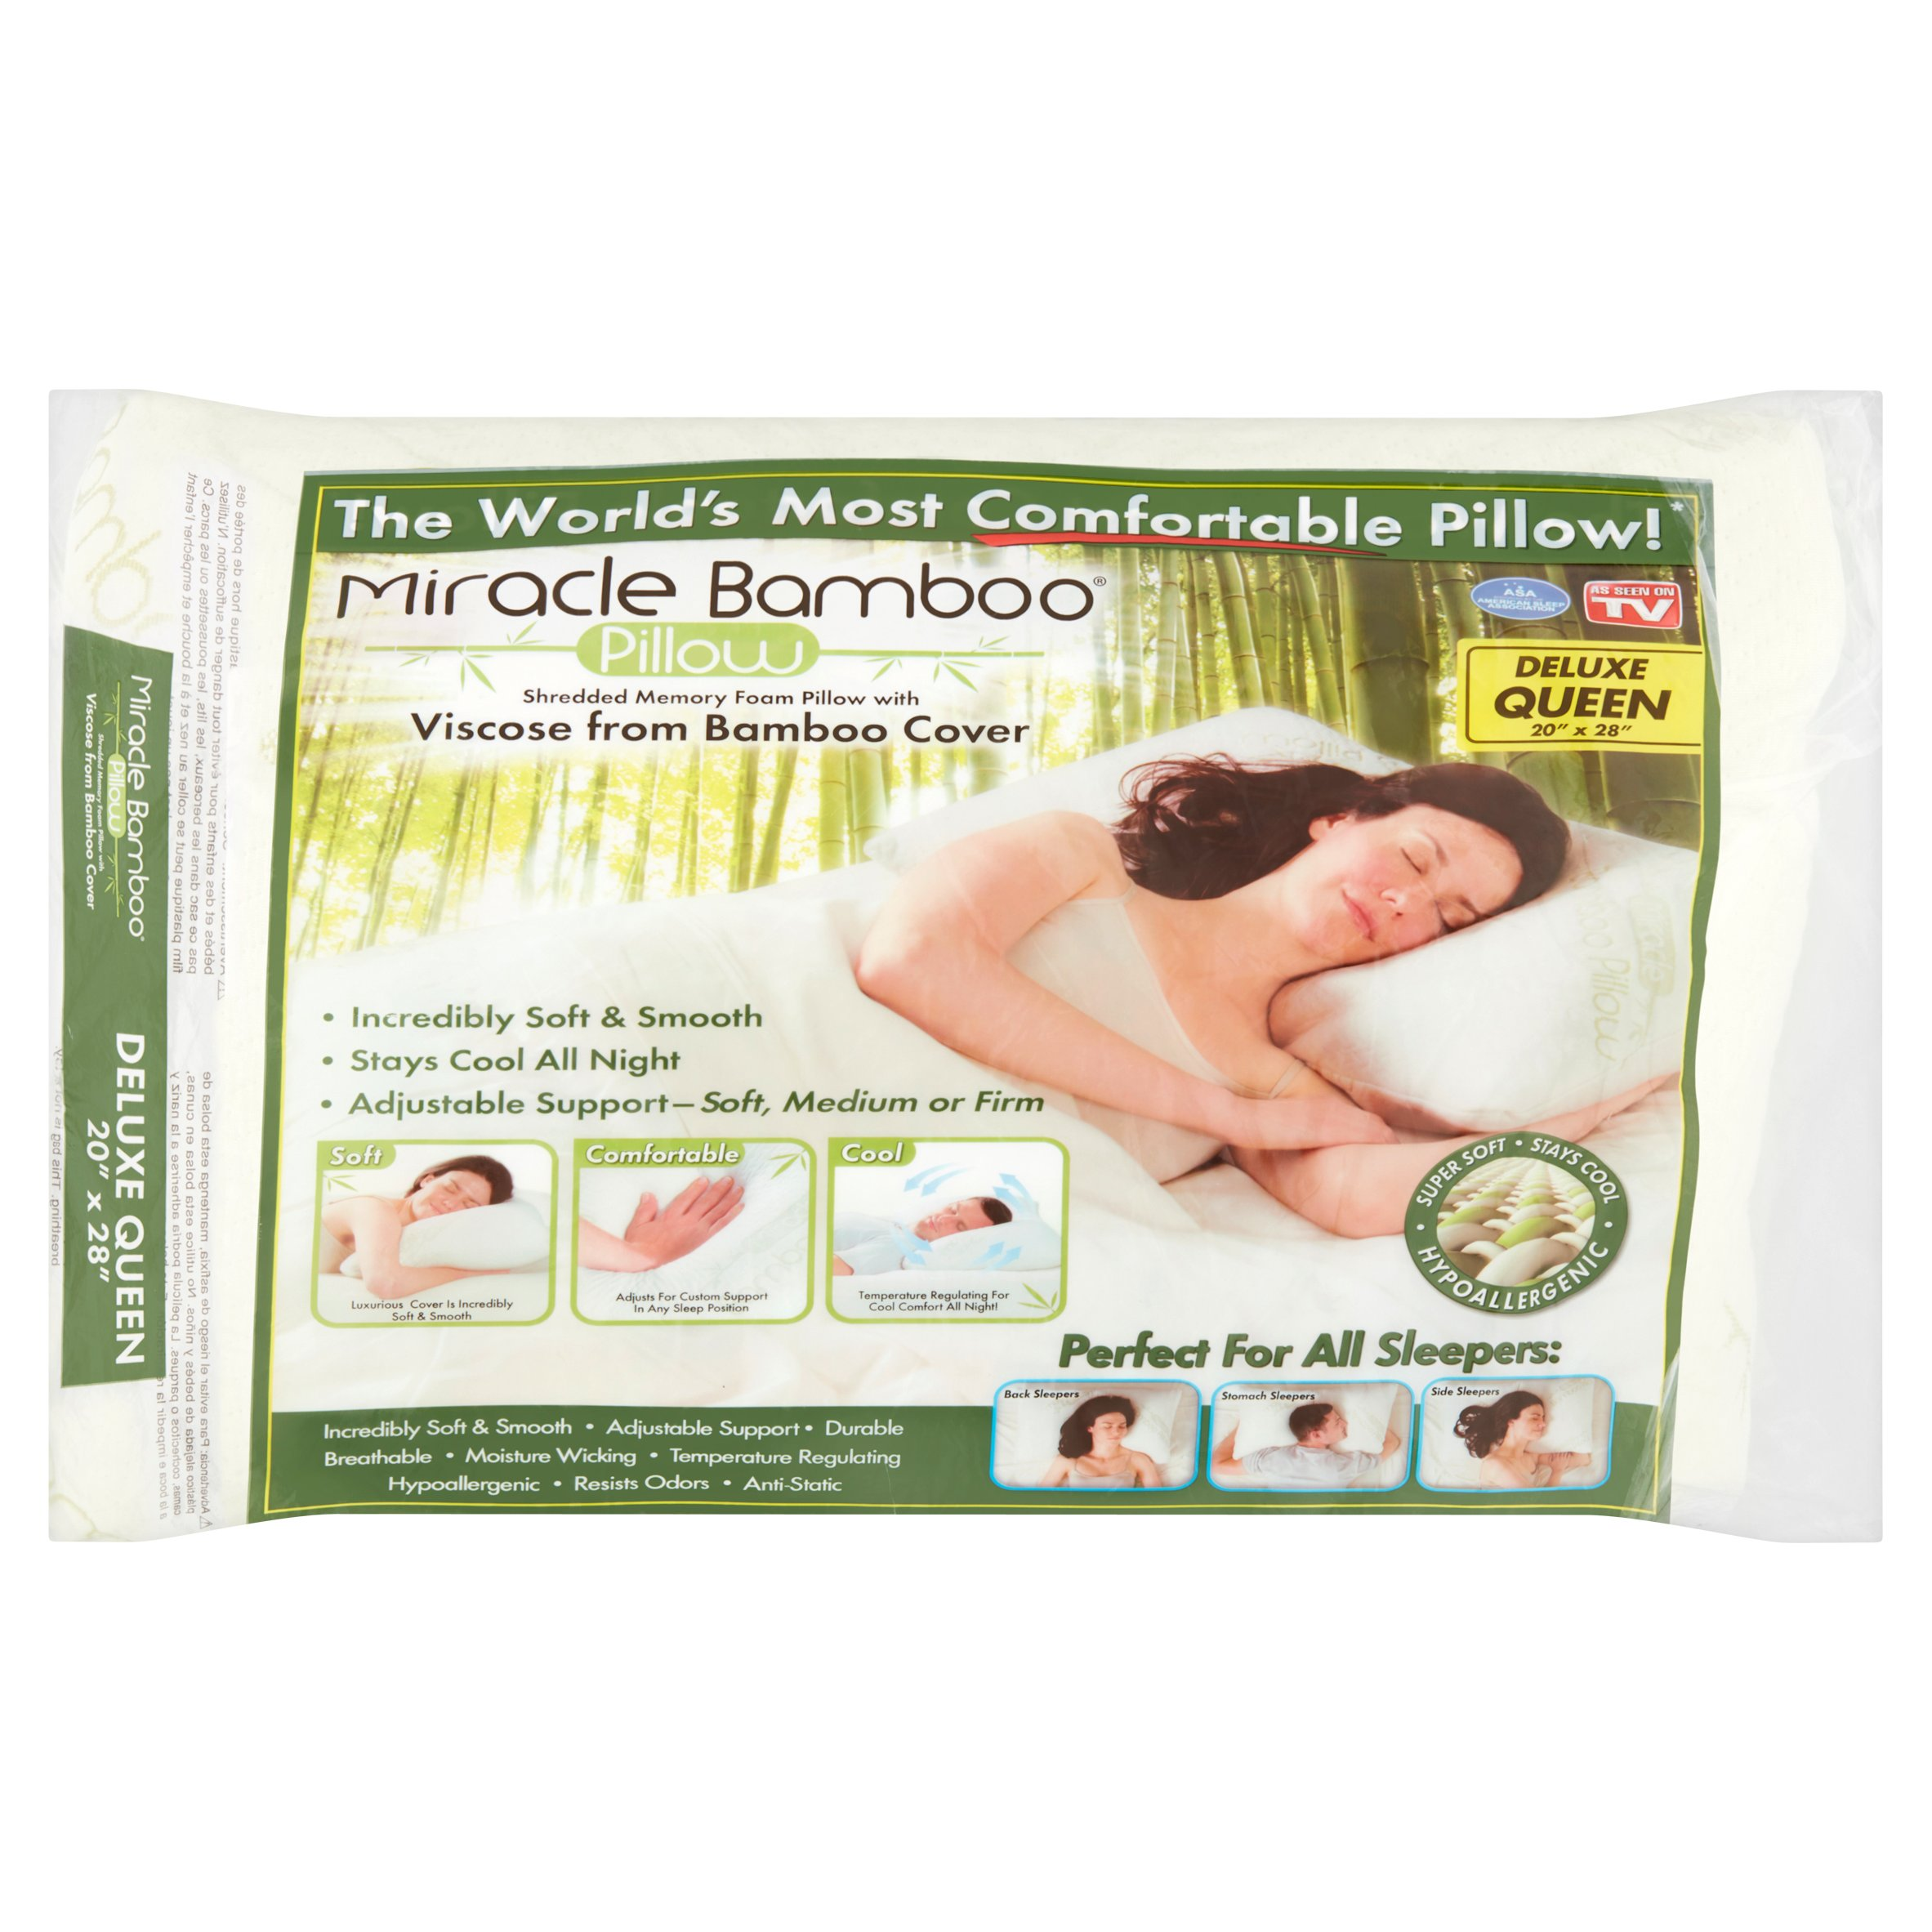 miracle bamboo pillow queen size memory foam pillow with bamboo viscose cover as seen on tv